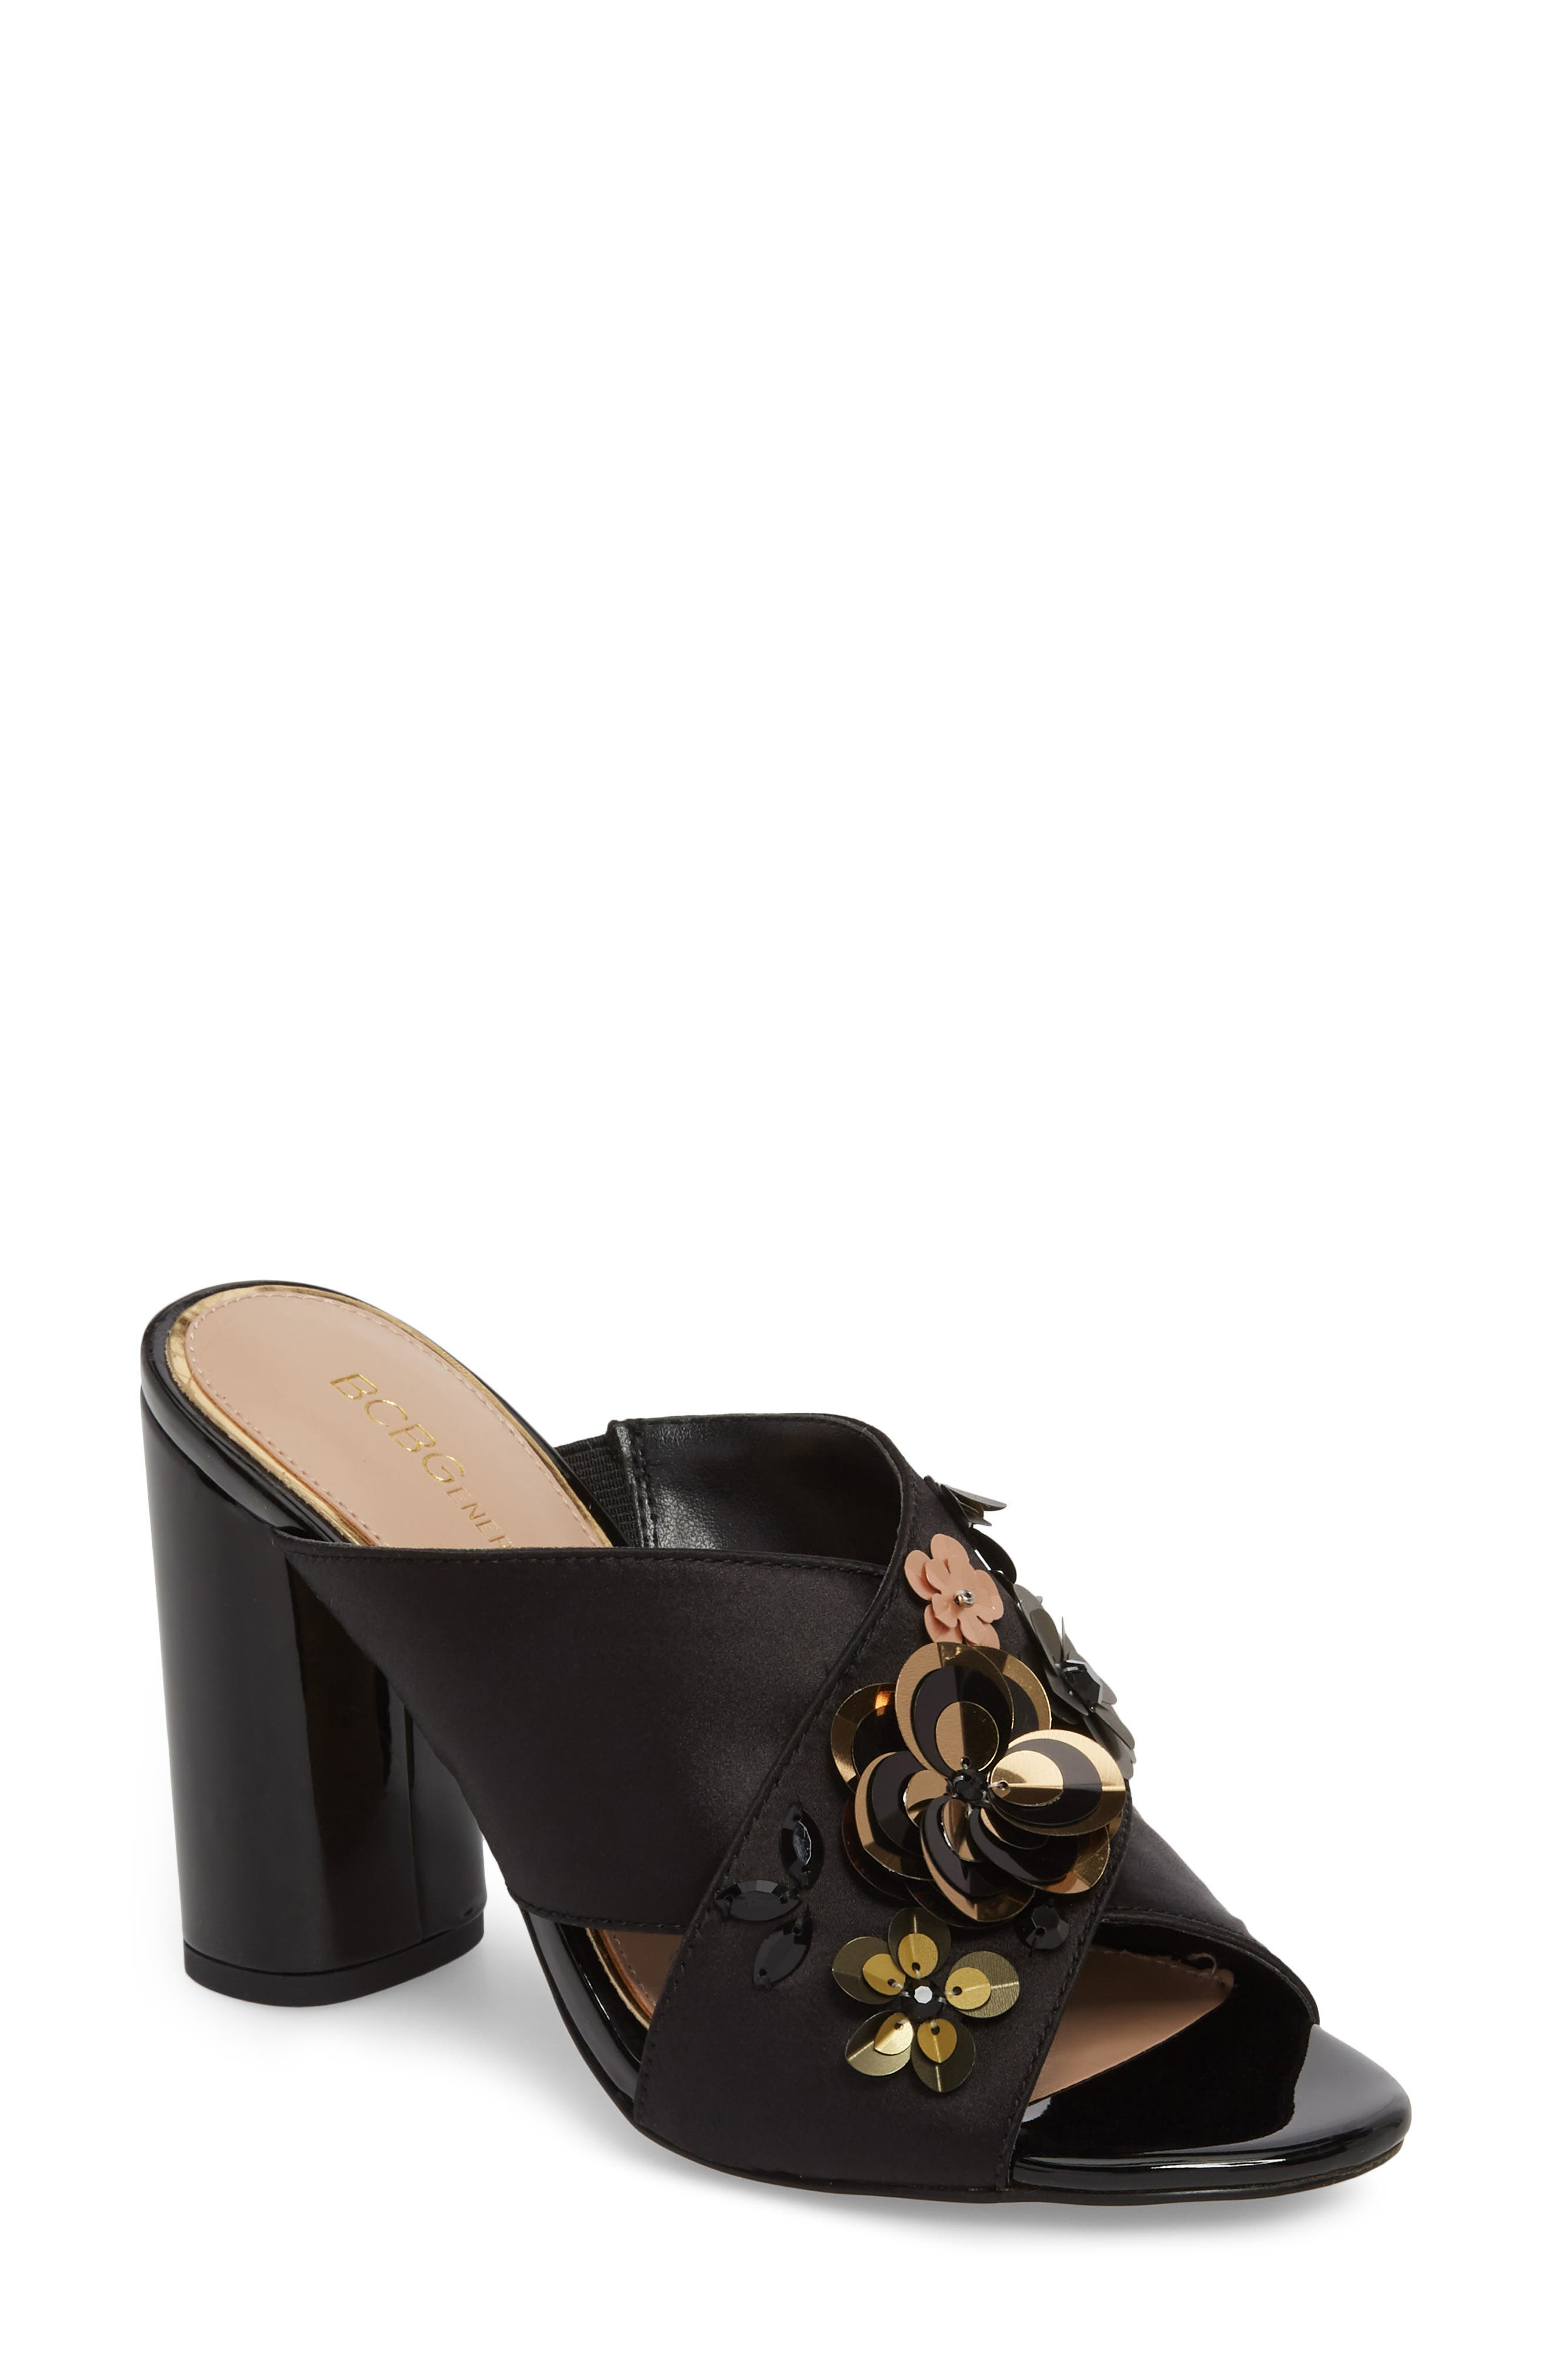 Fabia Sequin Flower Embellished Mule,                             Main thumbnail 1, color,                             001